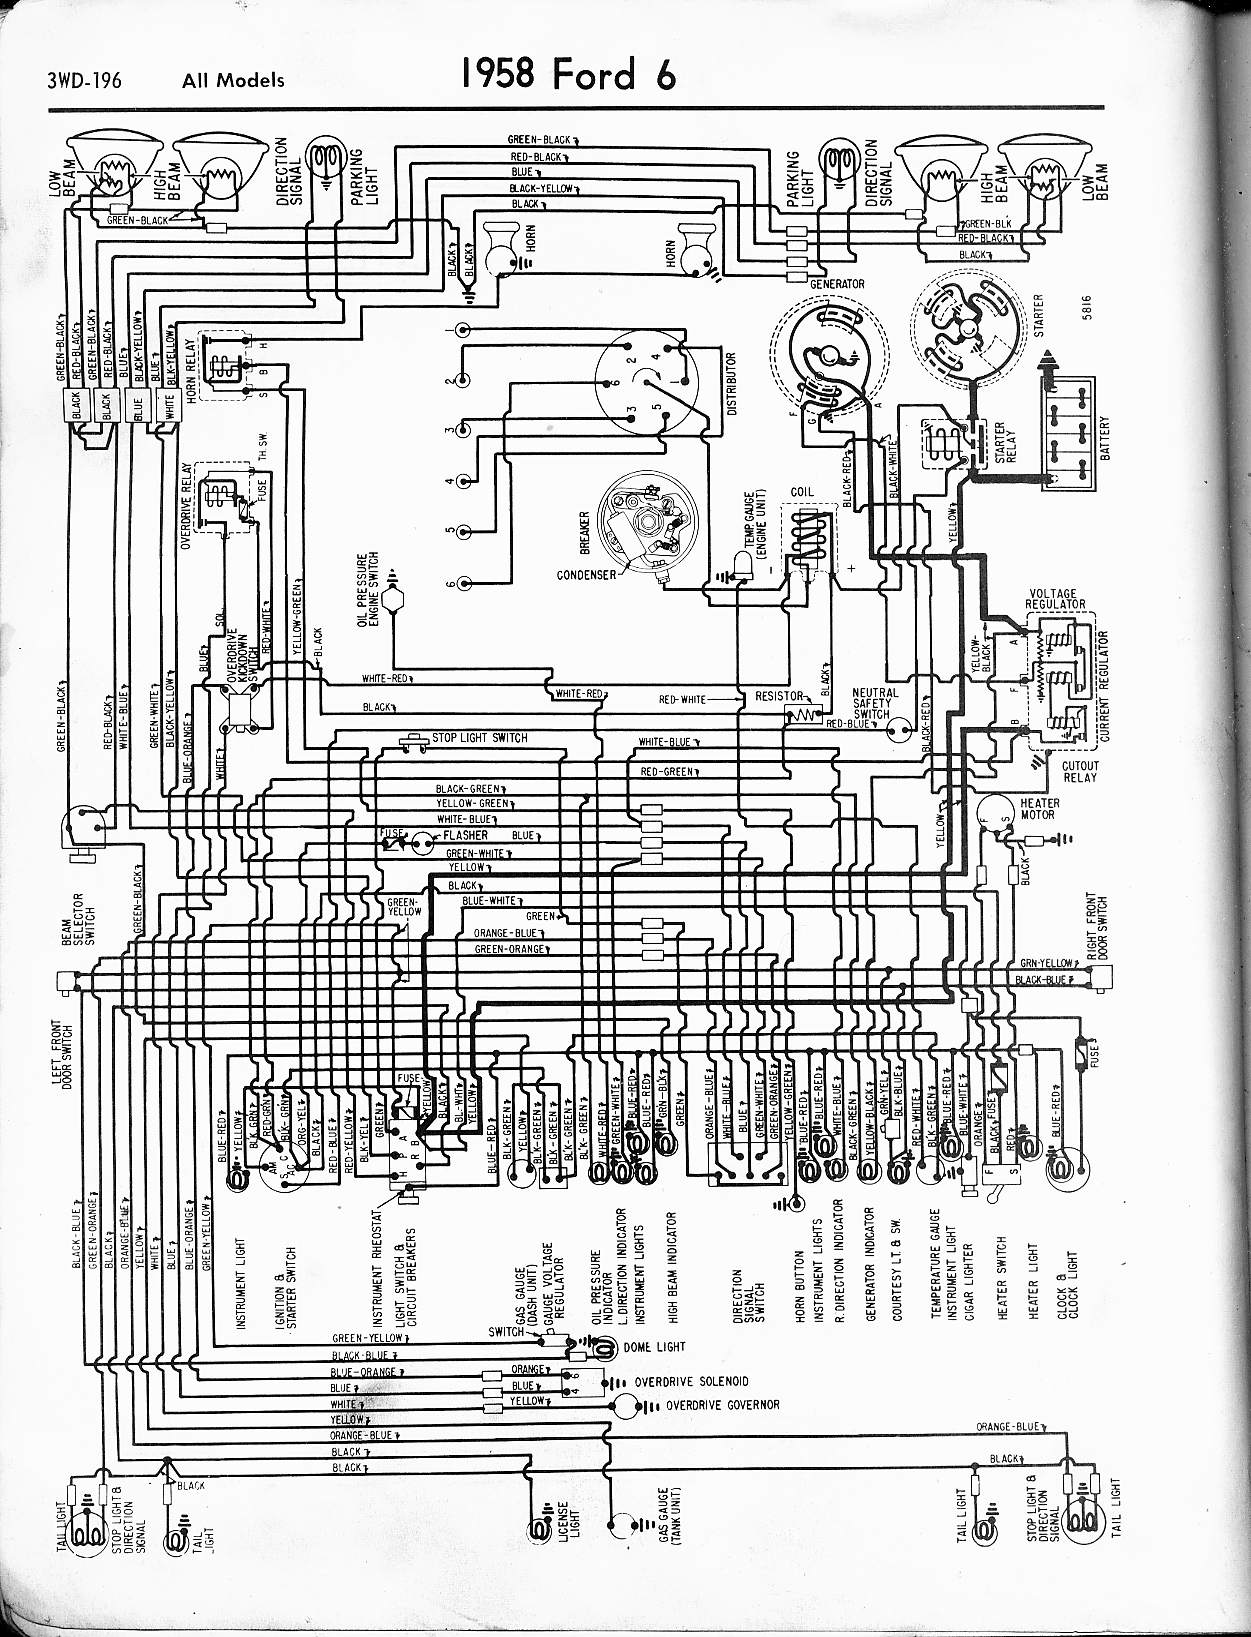 Sensational Ford 50 Wiring Harness Basic Electronics Wiring Diagram Wiring Digital Resources Remcakbiperorg